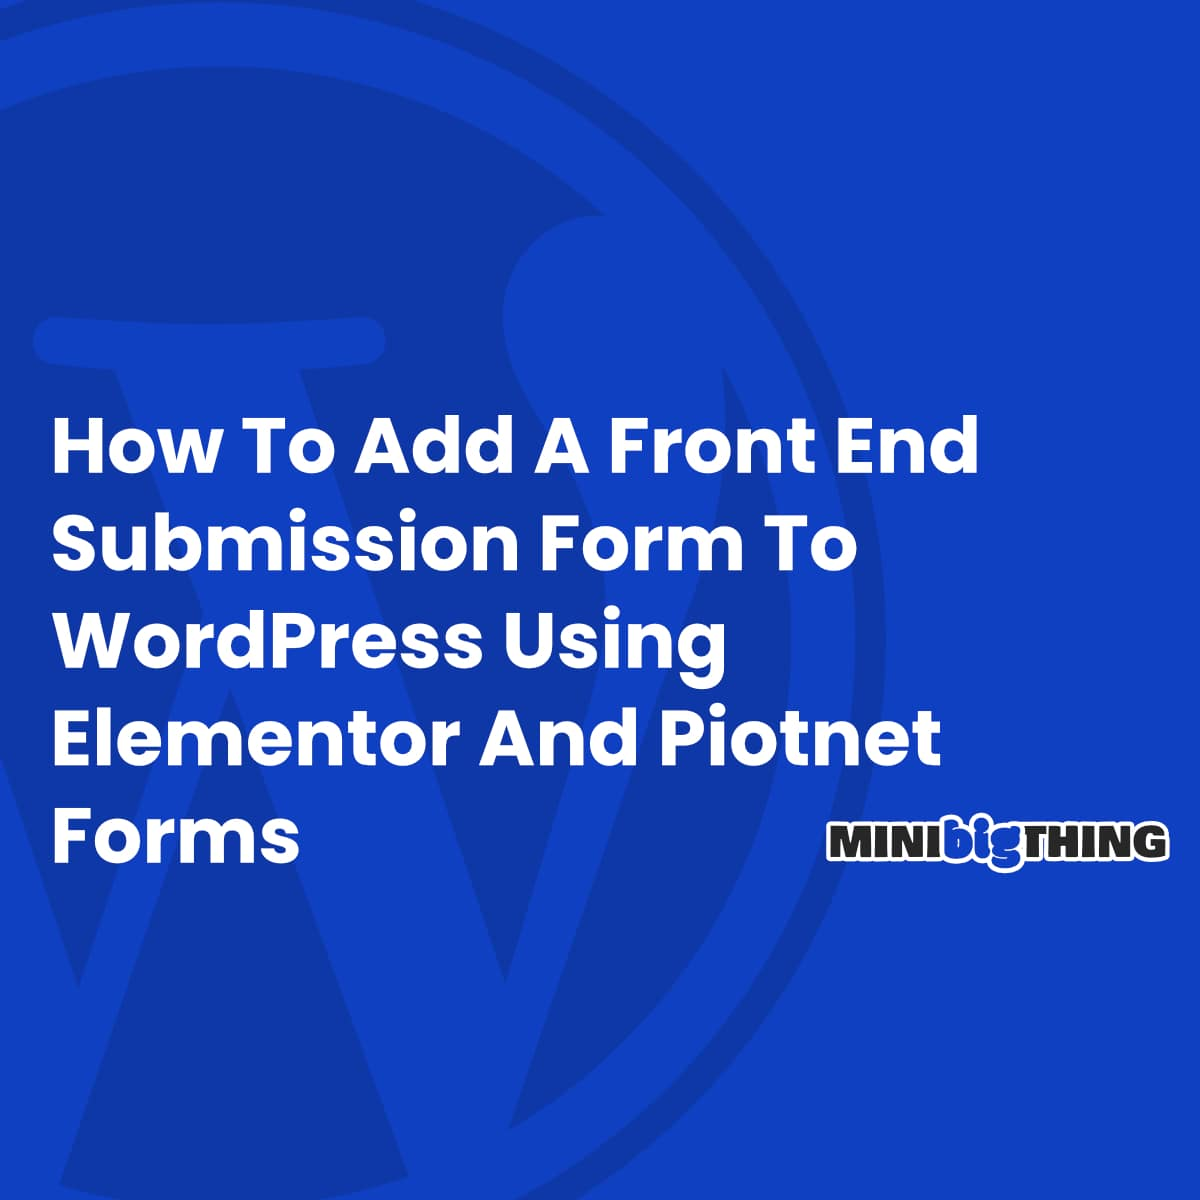 How To Add A Front End Submission Form To Wordpress Using Elementor And Piotnet Forms